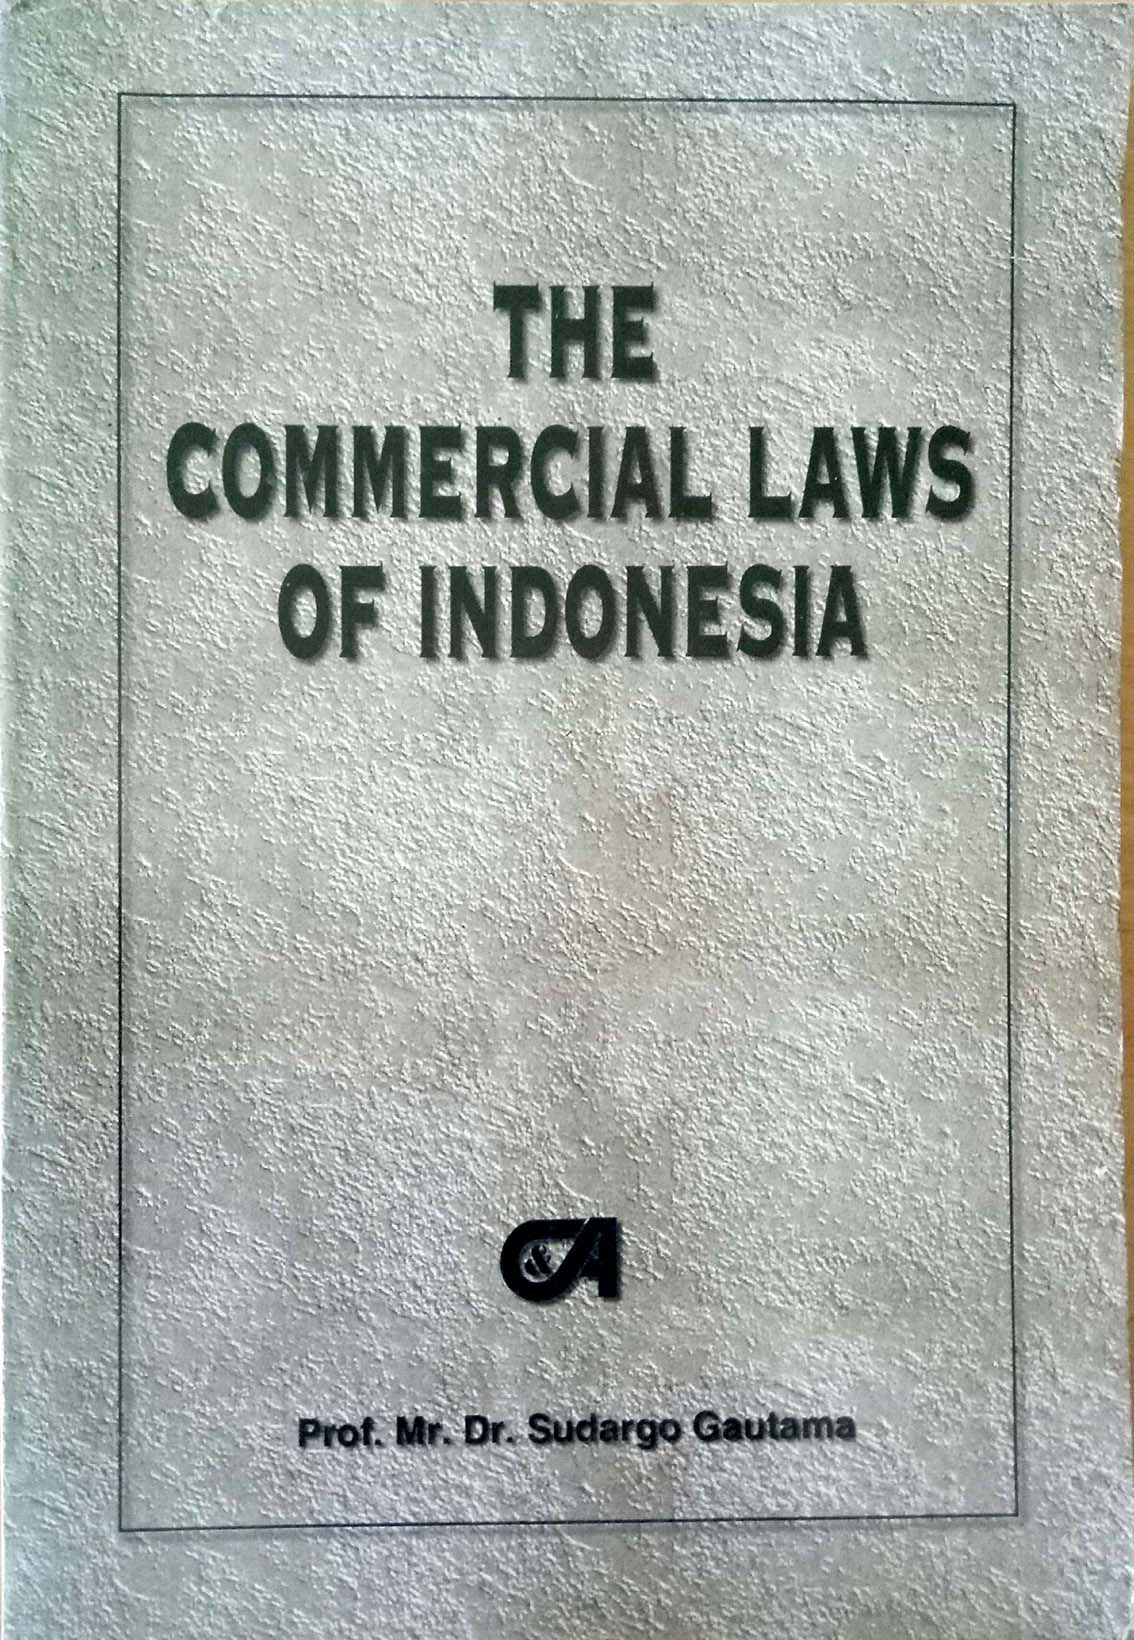 The Commercial Laws of Indonesia